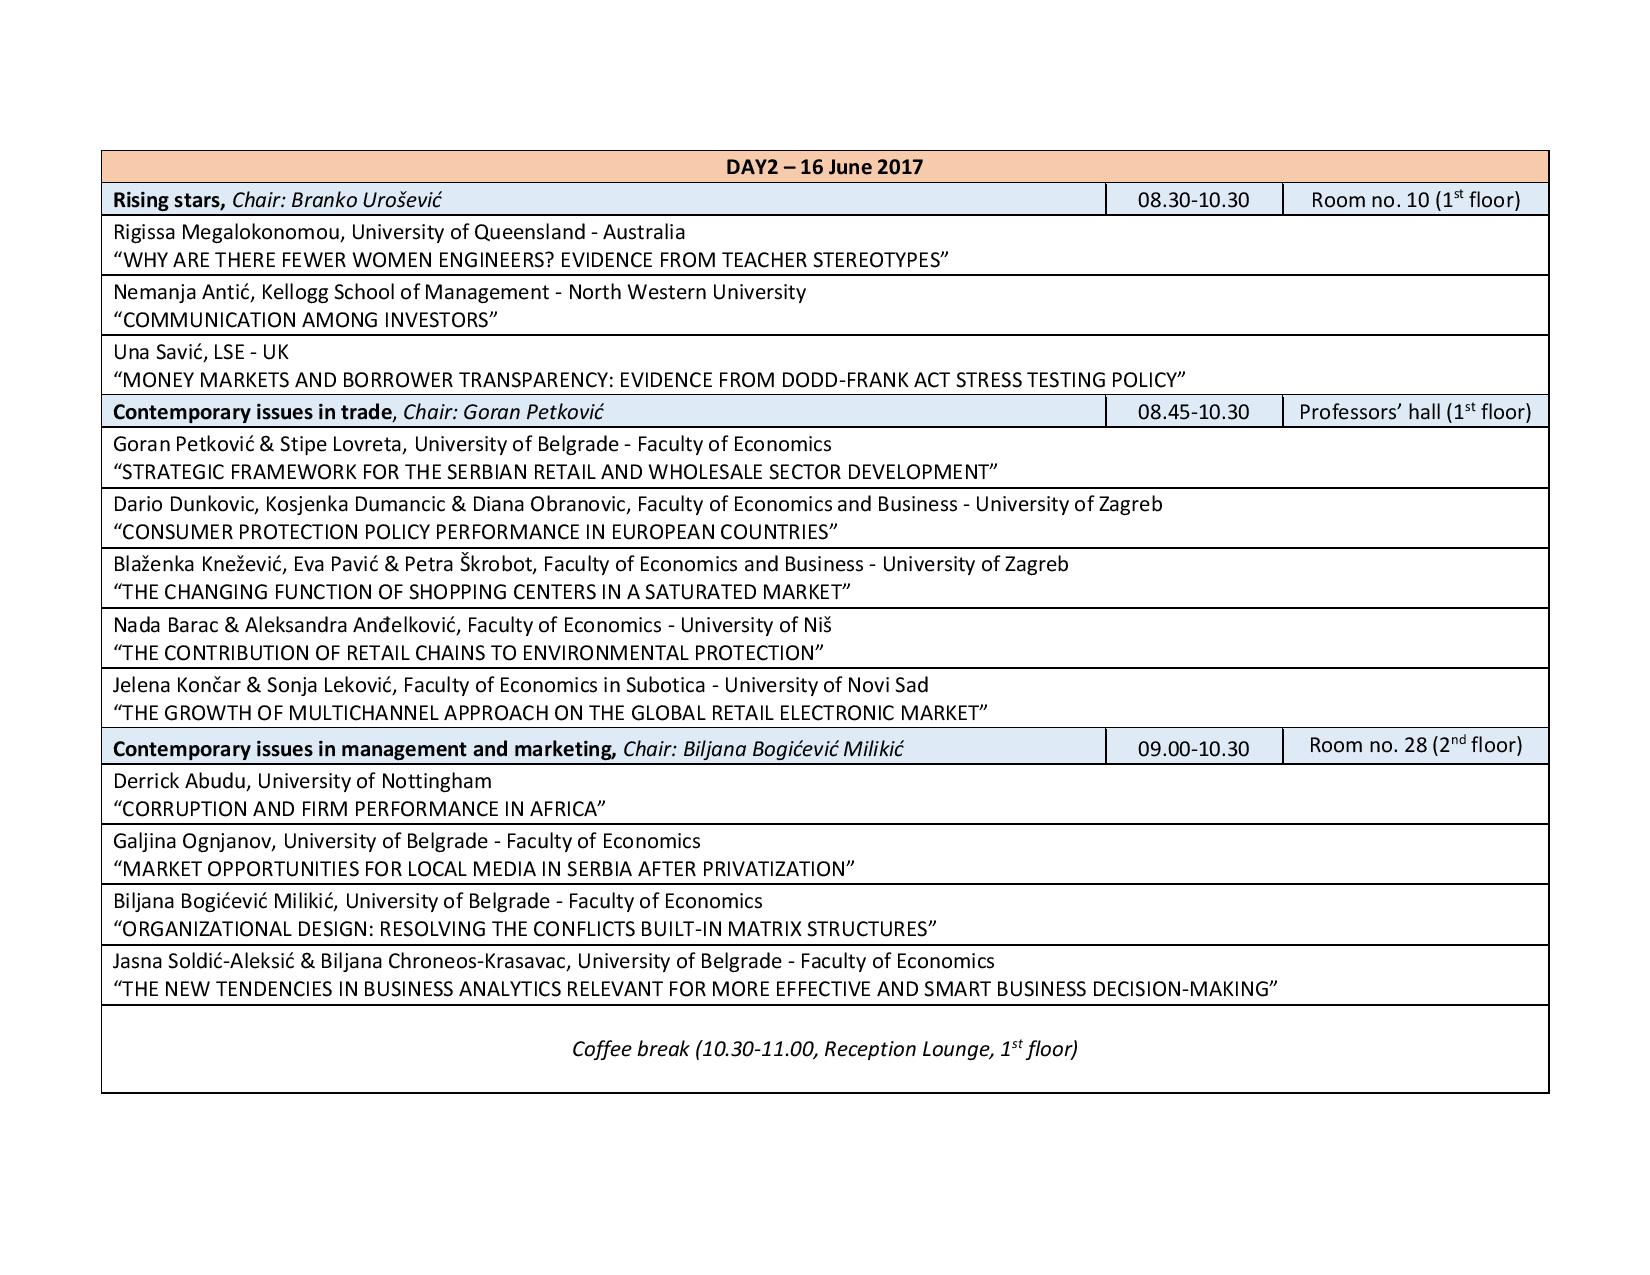 Conference program_Faculty of Economics (University of Belgrade)_draft-page-004